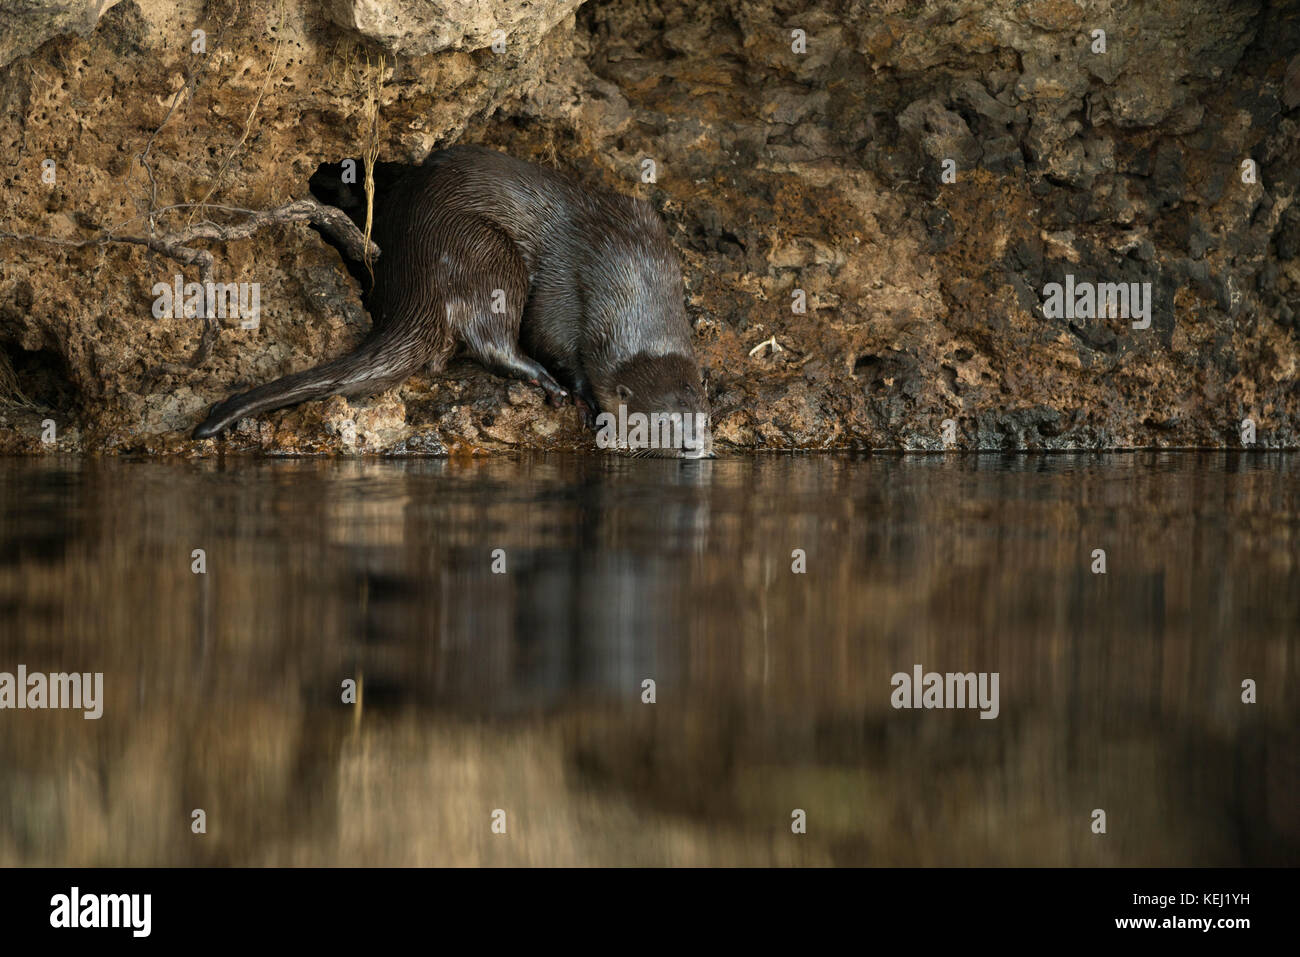 A Neotropical River Otter entering the water in South Pantanal, Brazil - Stock Image